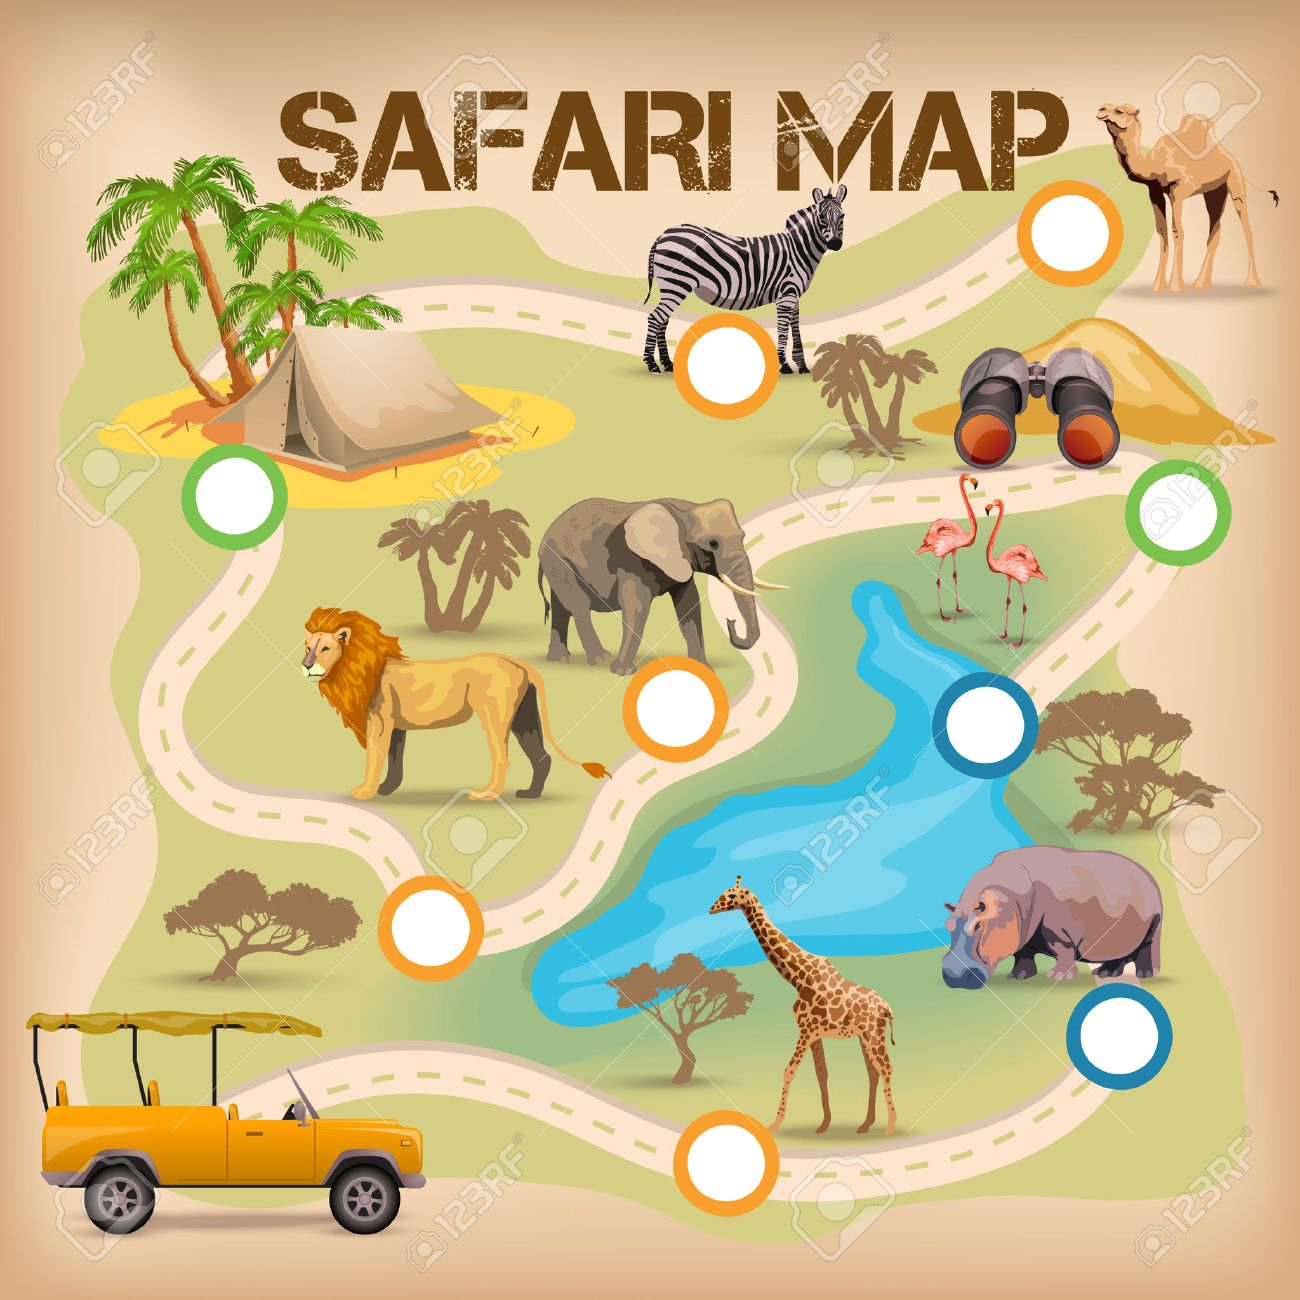 Poster for game with safari map and africa animal icons  isolated vector illustration Stock Vector - 47625684